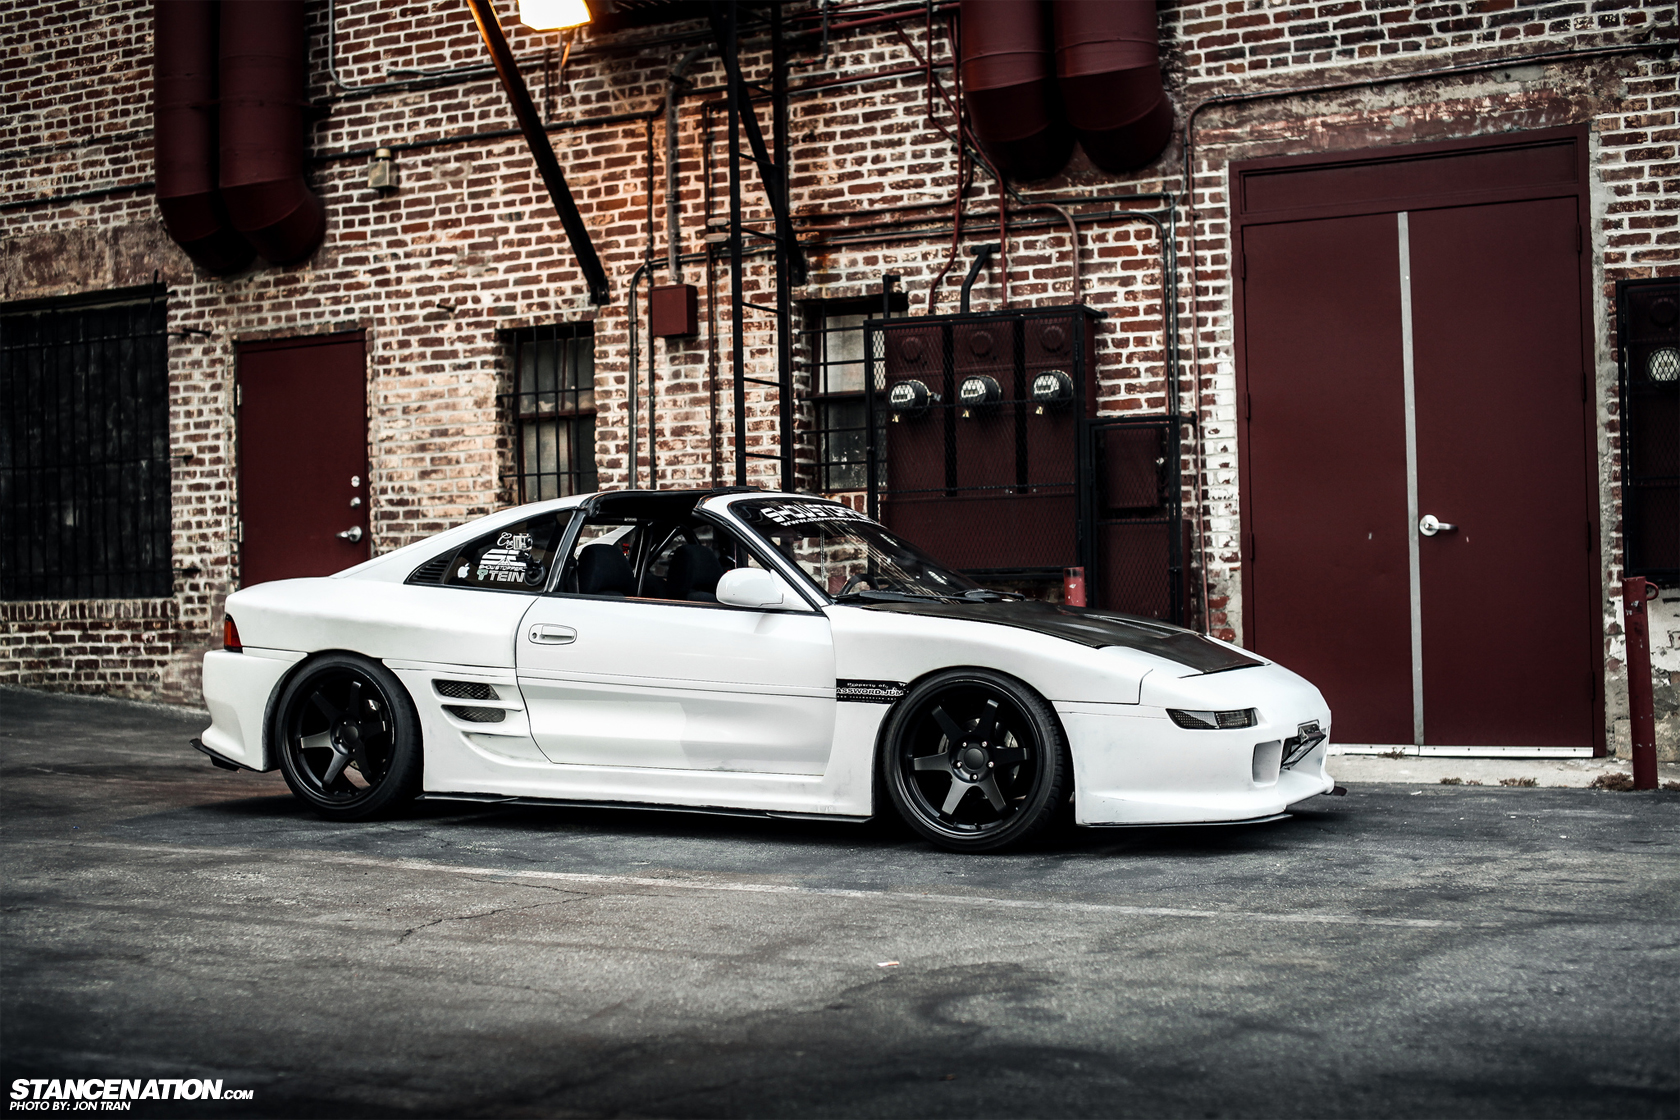 Cult Classic Second Gen Toyota Mr2 Gets Cool Makeover